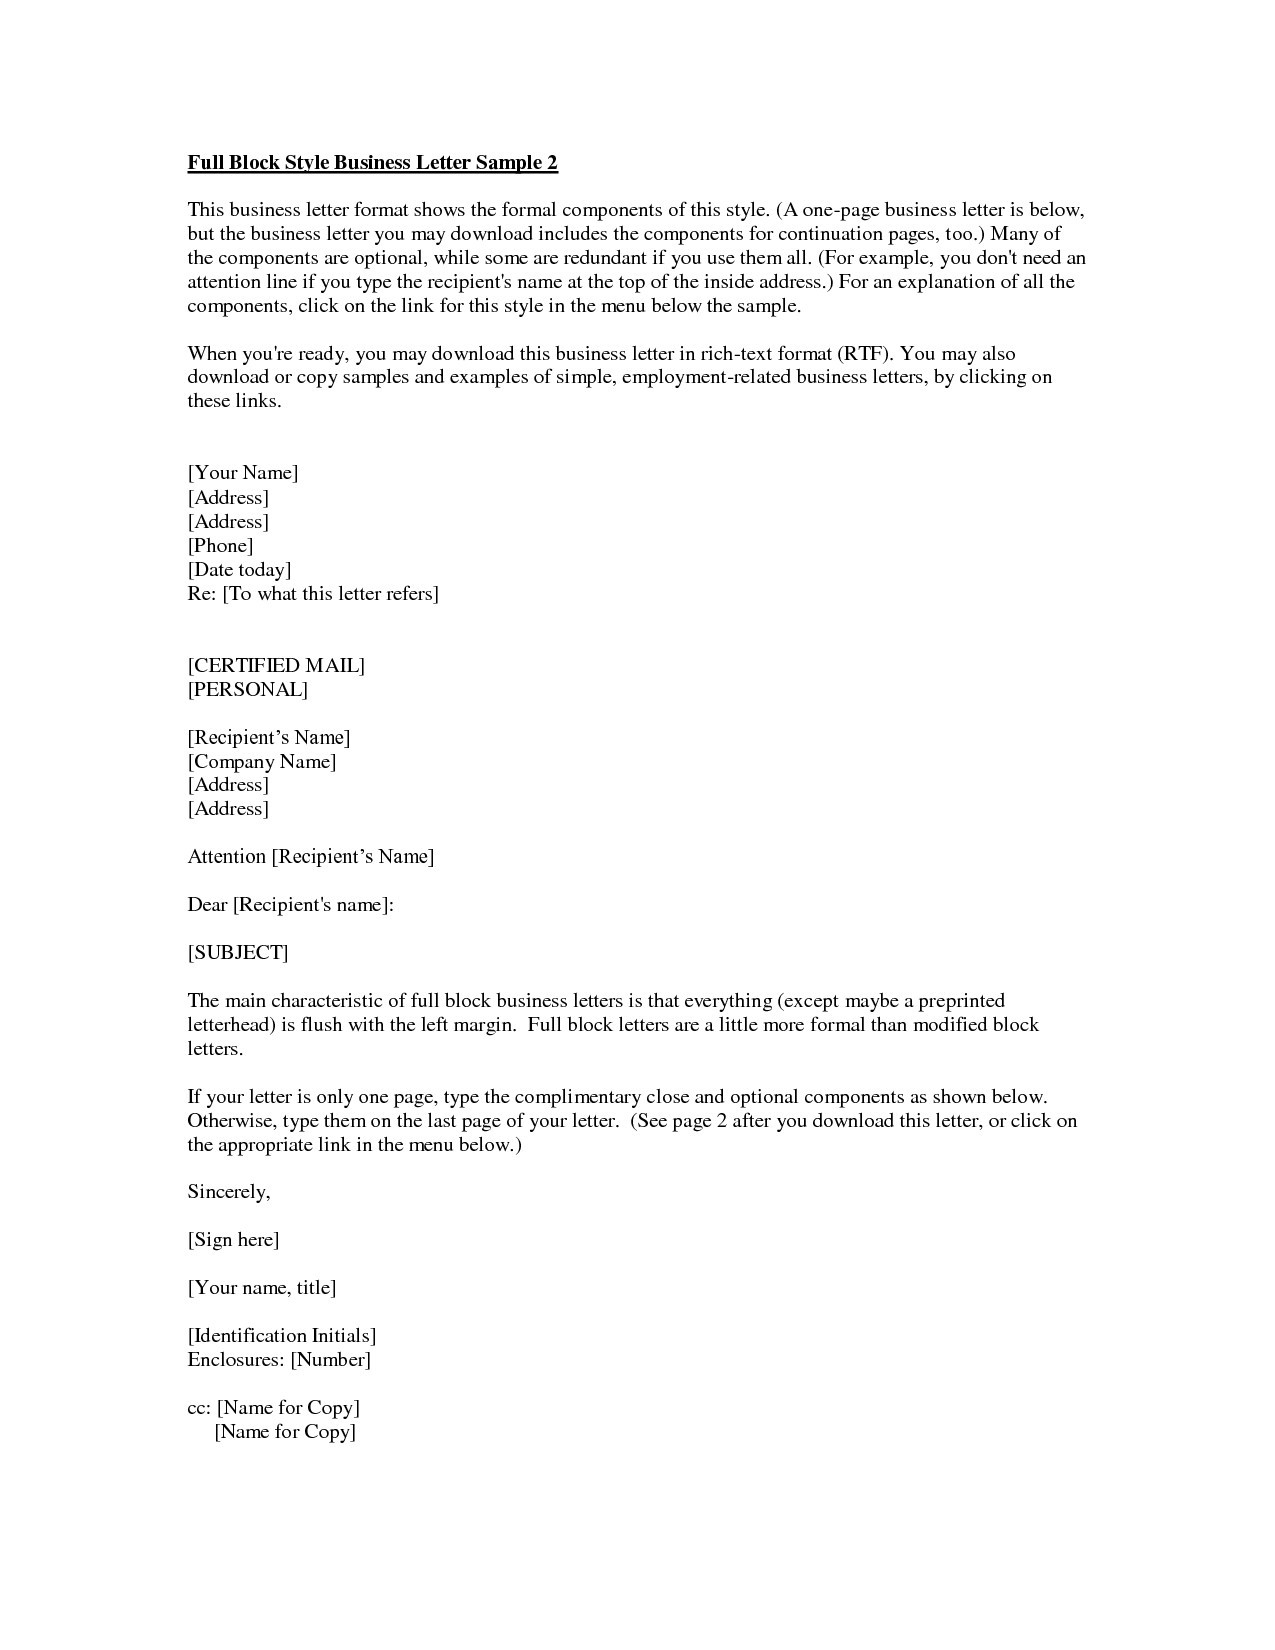 Business Letter Format Enclosure | Examples And Forms in Formal Business Letter Format With Enclosure 22354